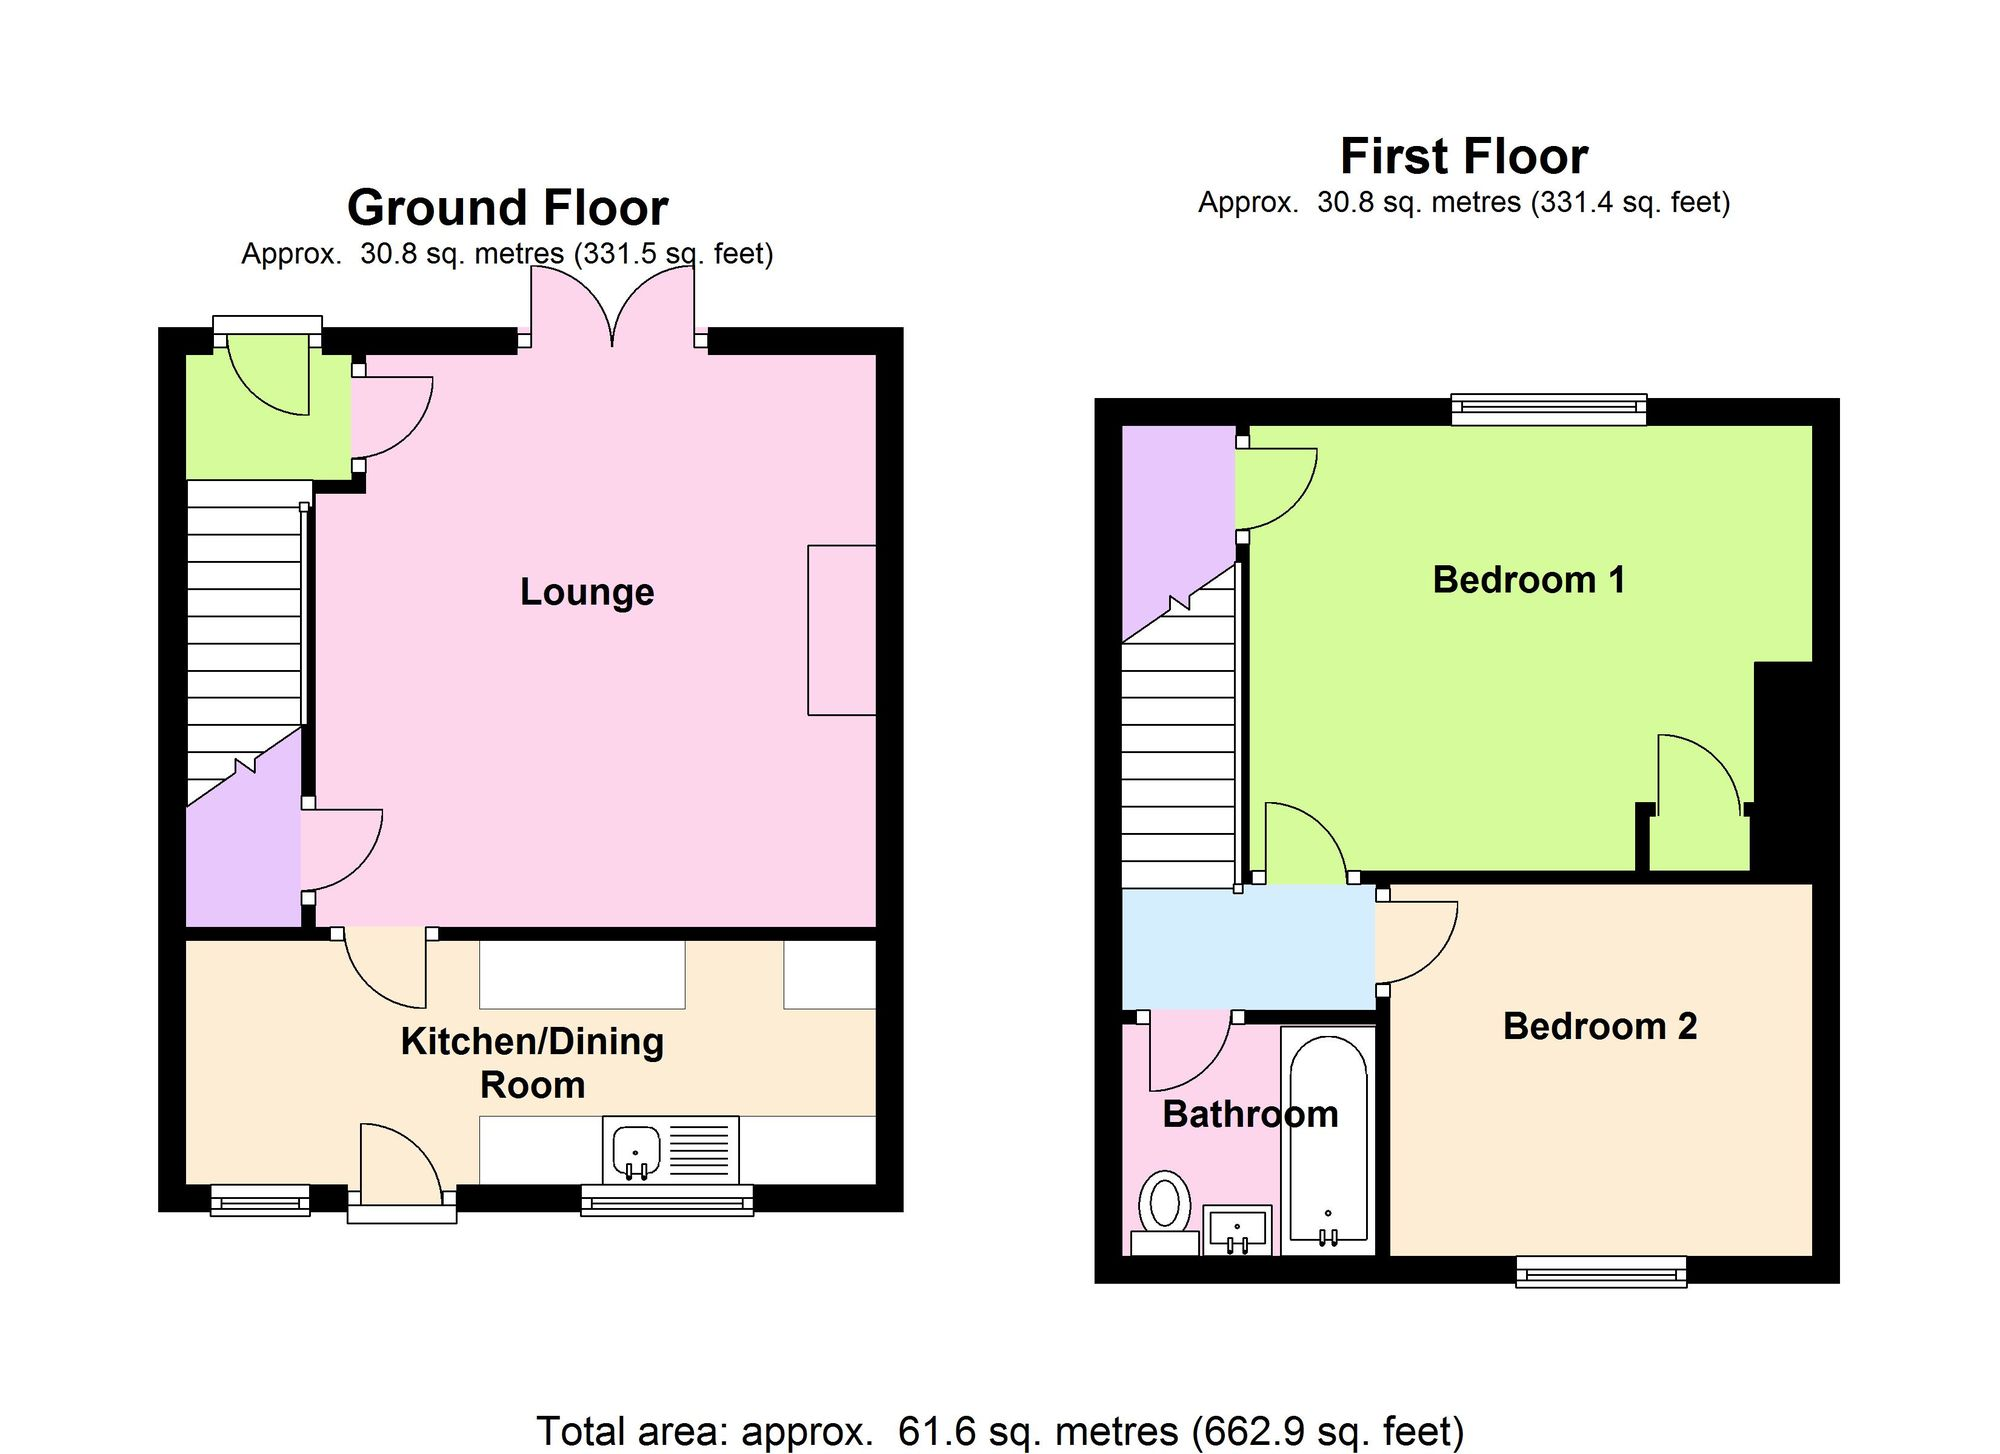 Property for sale in leadgate consett county durham for Floor plan finder